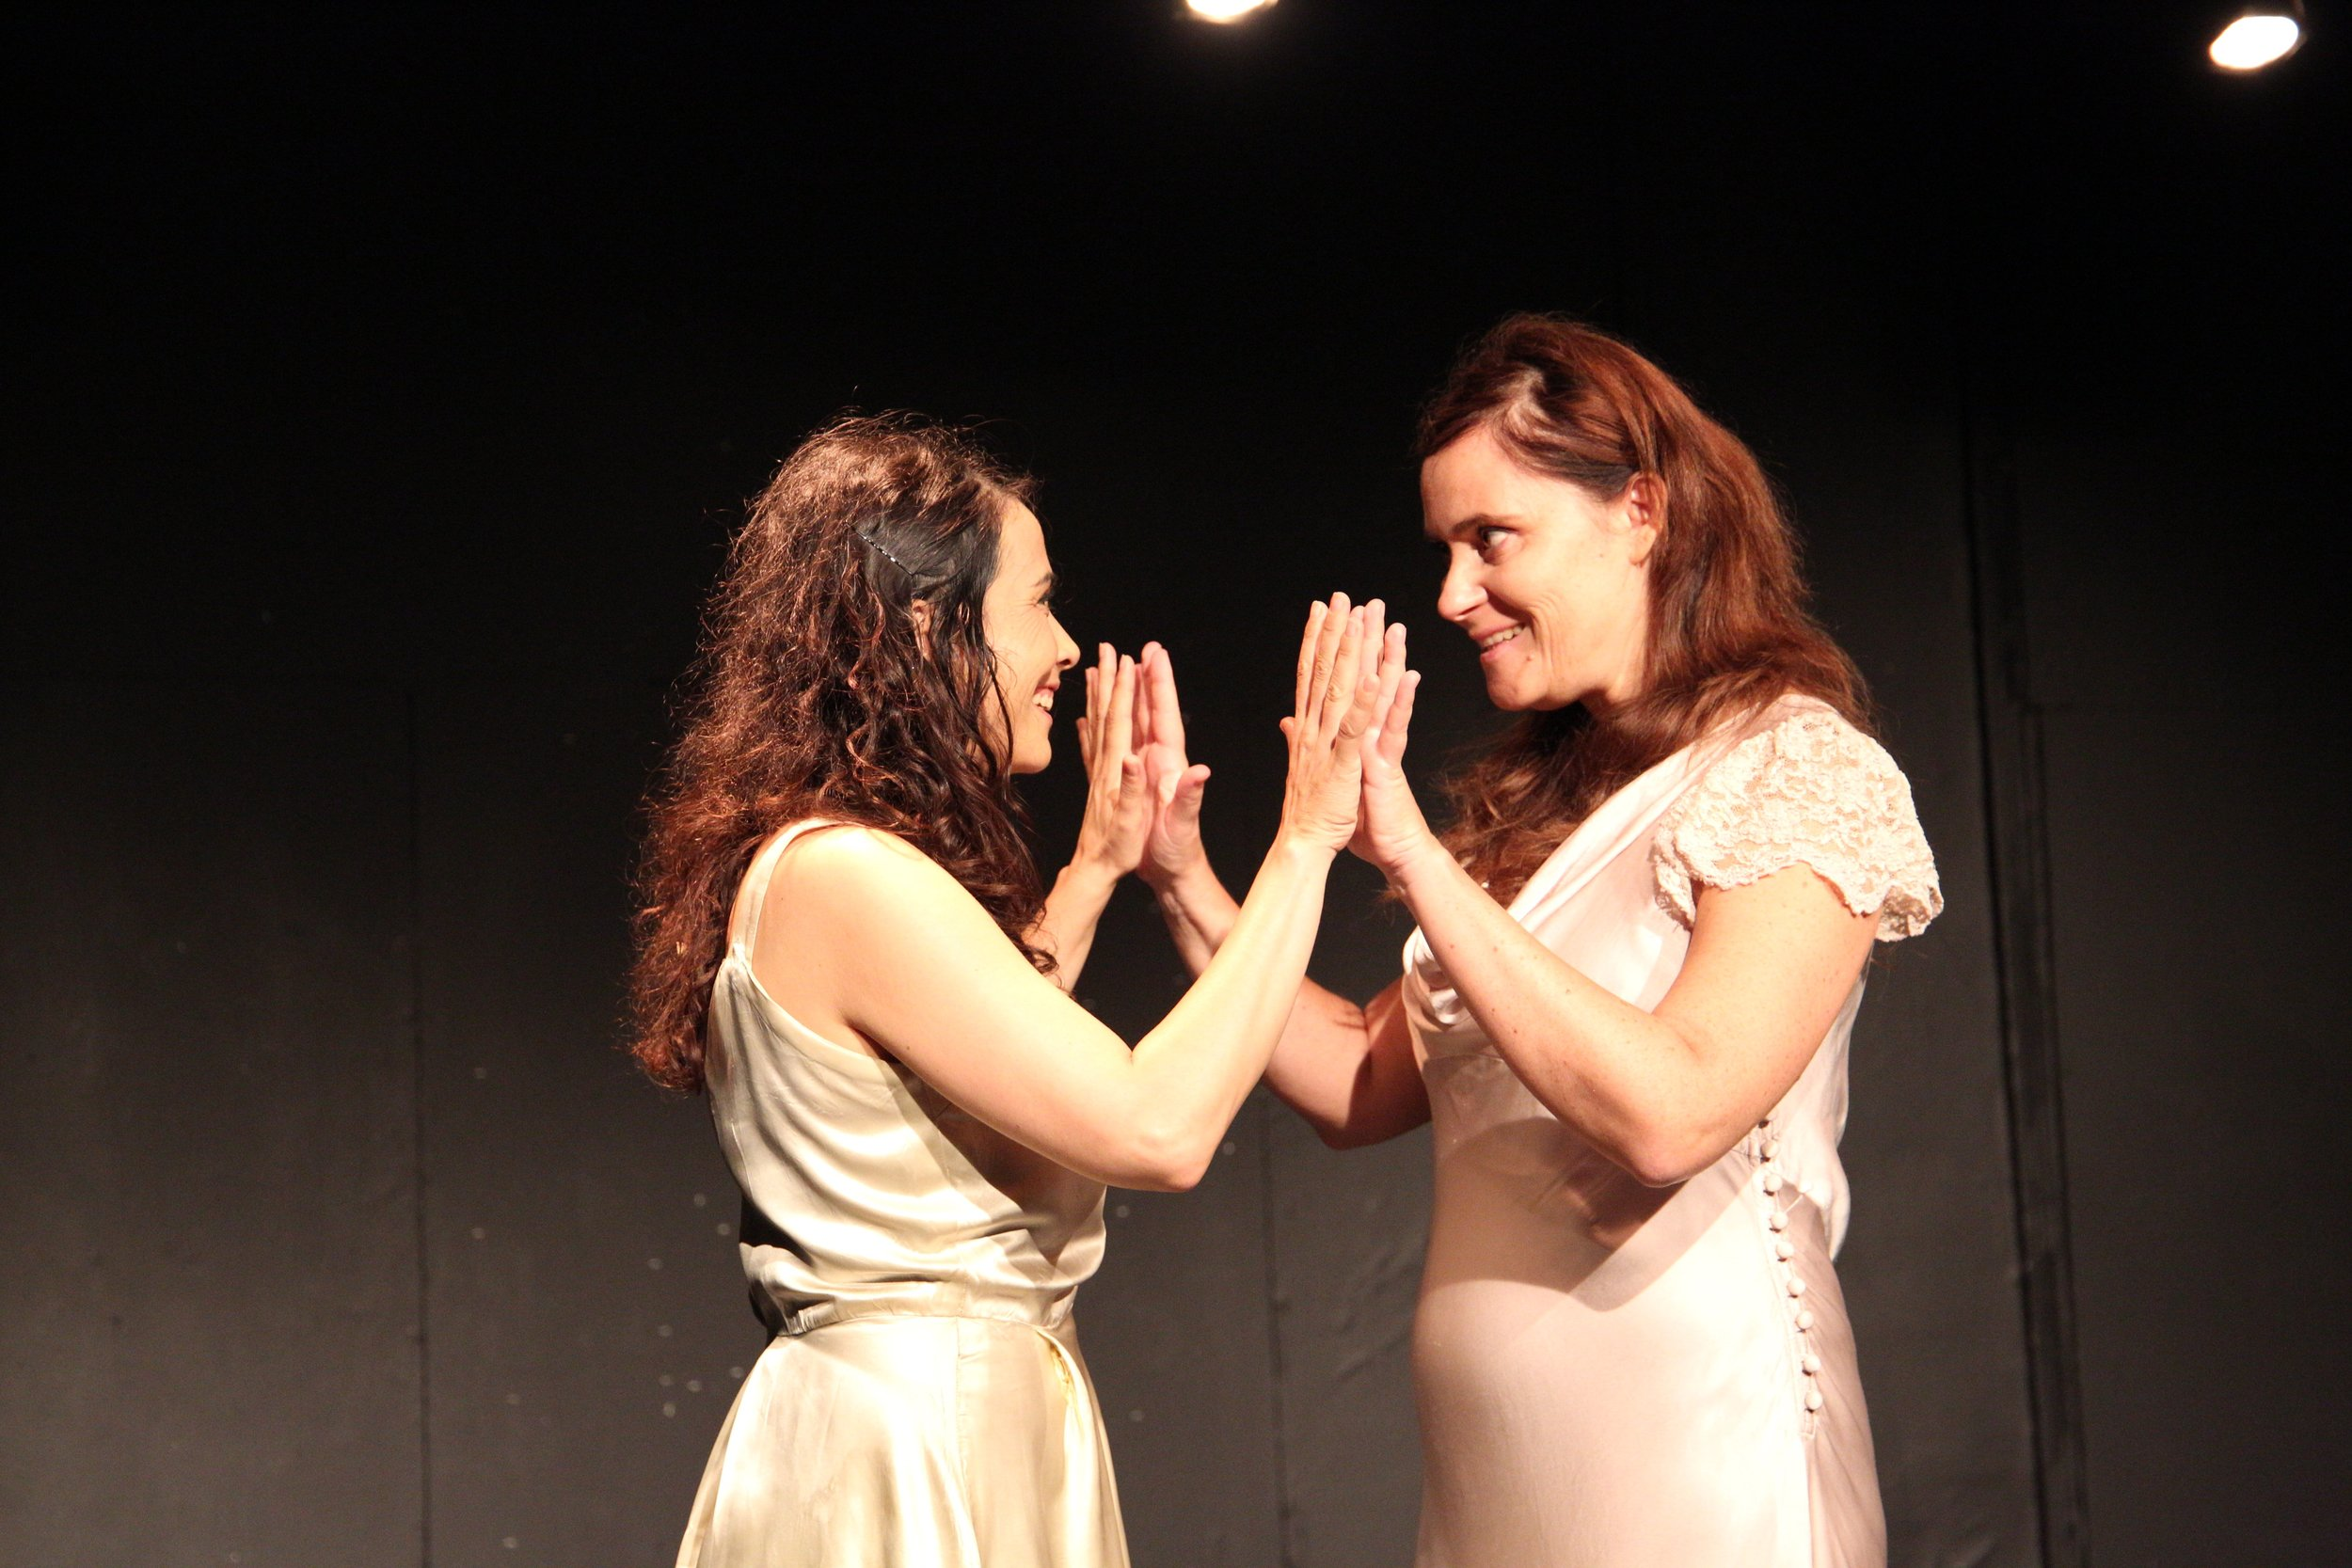 Copy of Micaela Ghiozzi and Rita Duvall (performers)